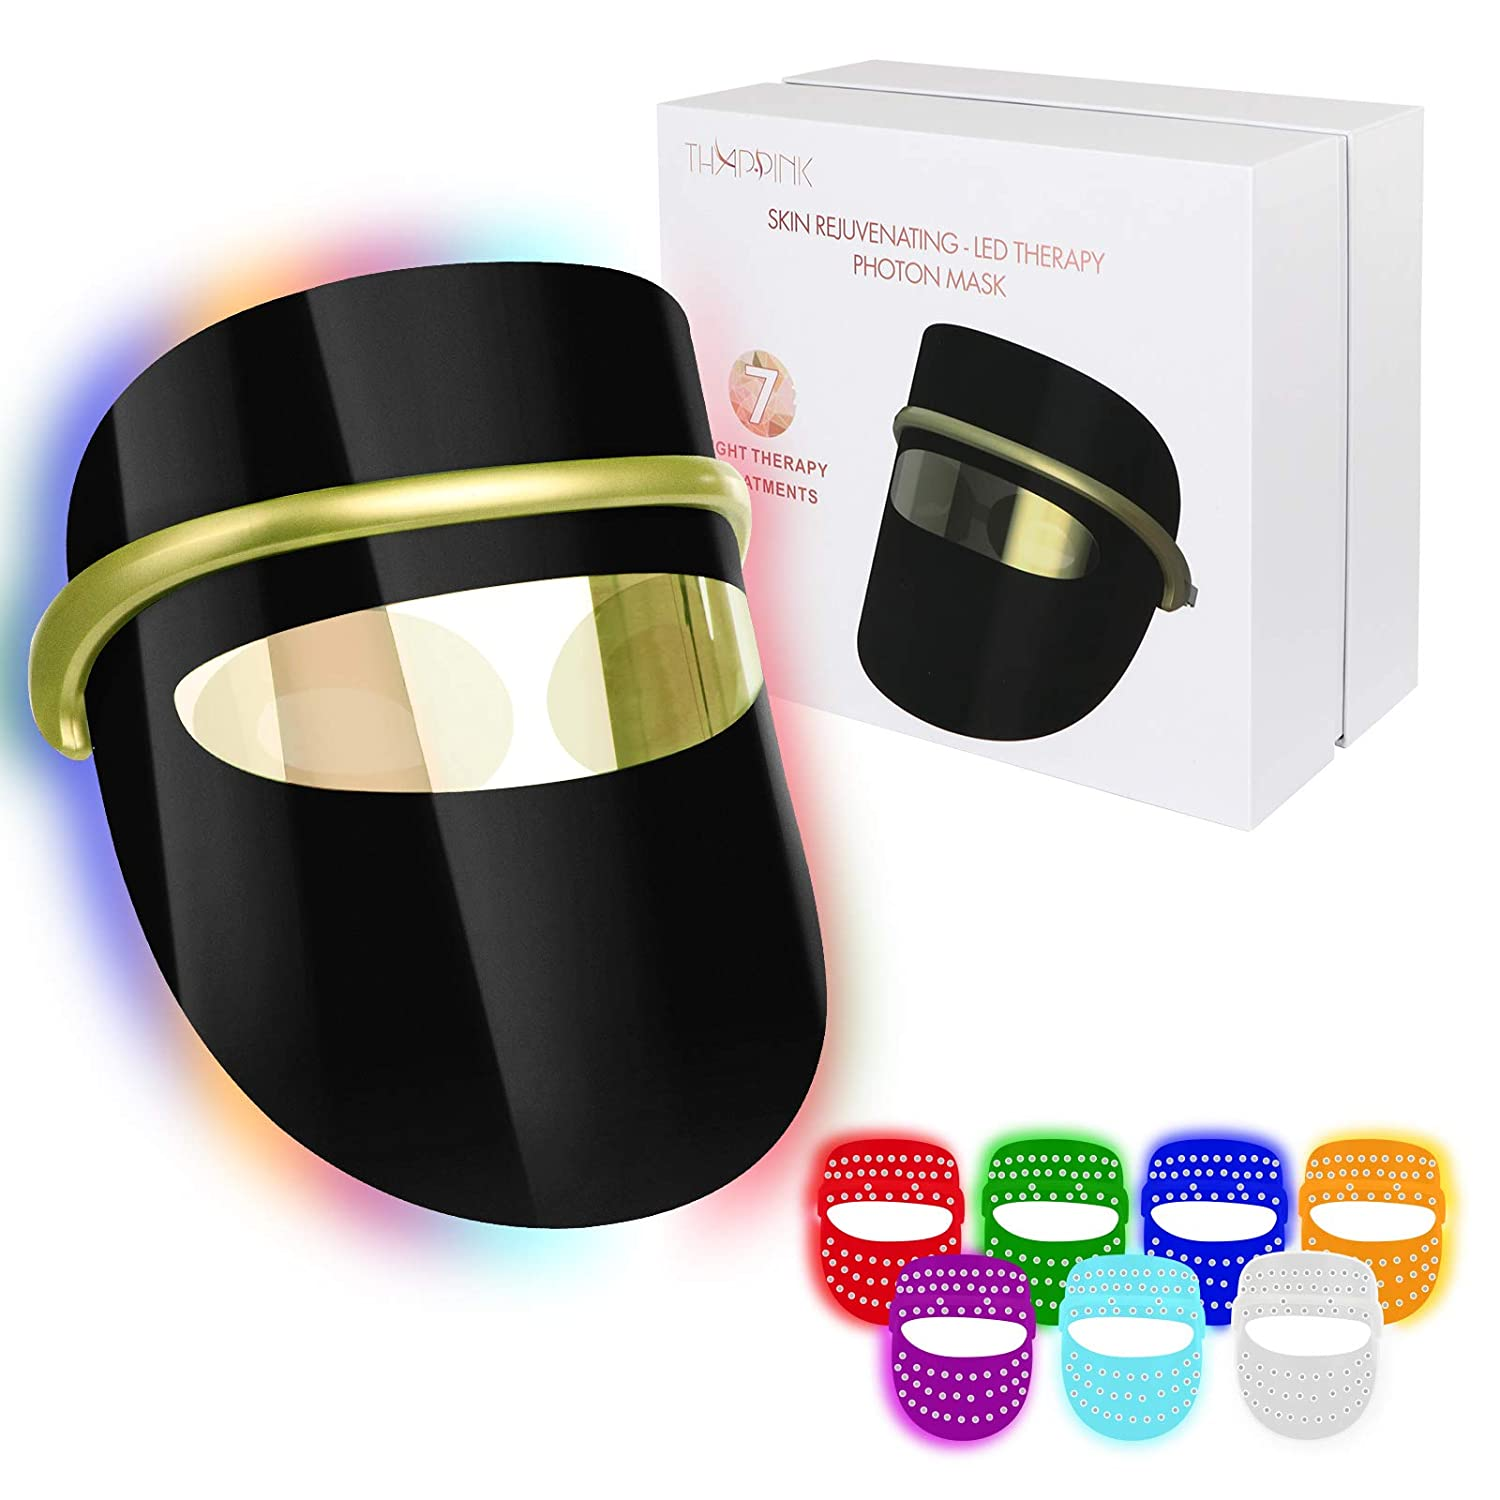 7 Colors LED Light Therapy Face Mask, LED Light Therapy Mask Facial for Wrinkles Skin Rejuvenation Home Skin Care